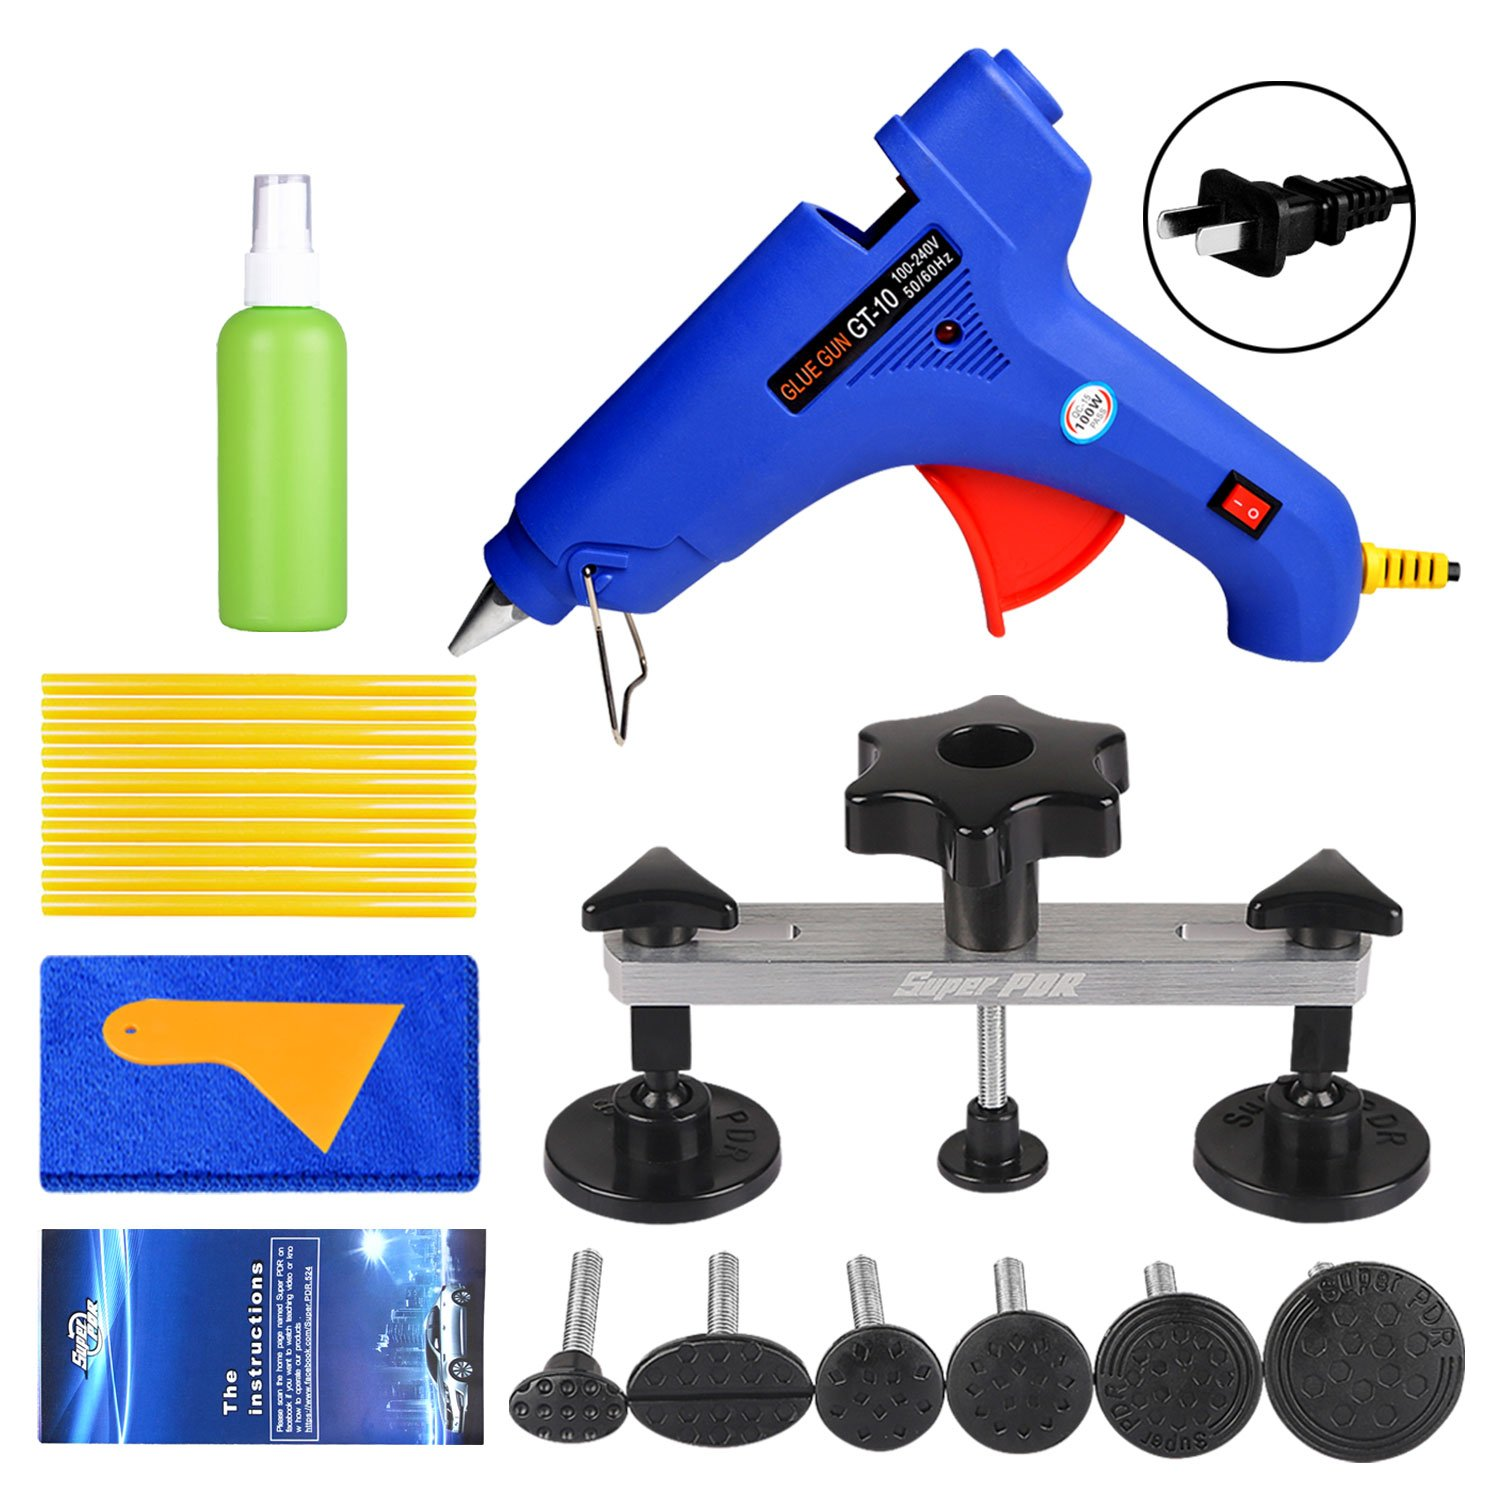 Fly5D 22Pcs Automotive No-scratch Paintless Dent Repair Kit Upgraded Dent Removal Bridge Puller kit by Fly5D (Image #1)